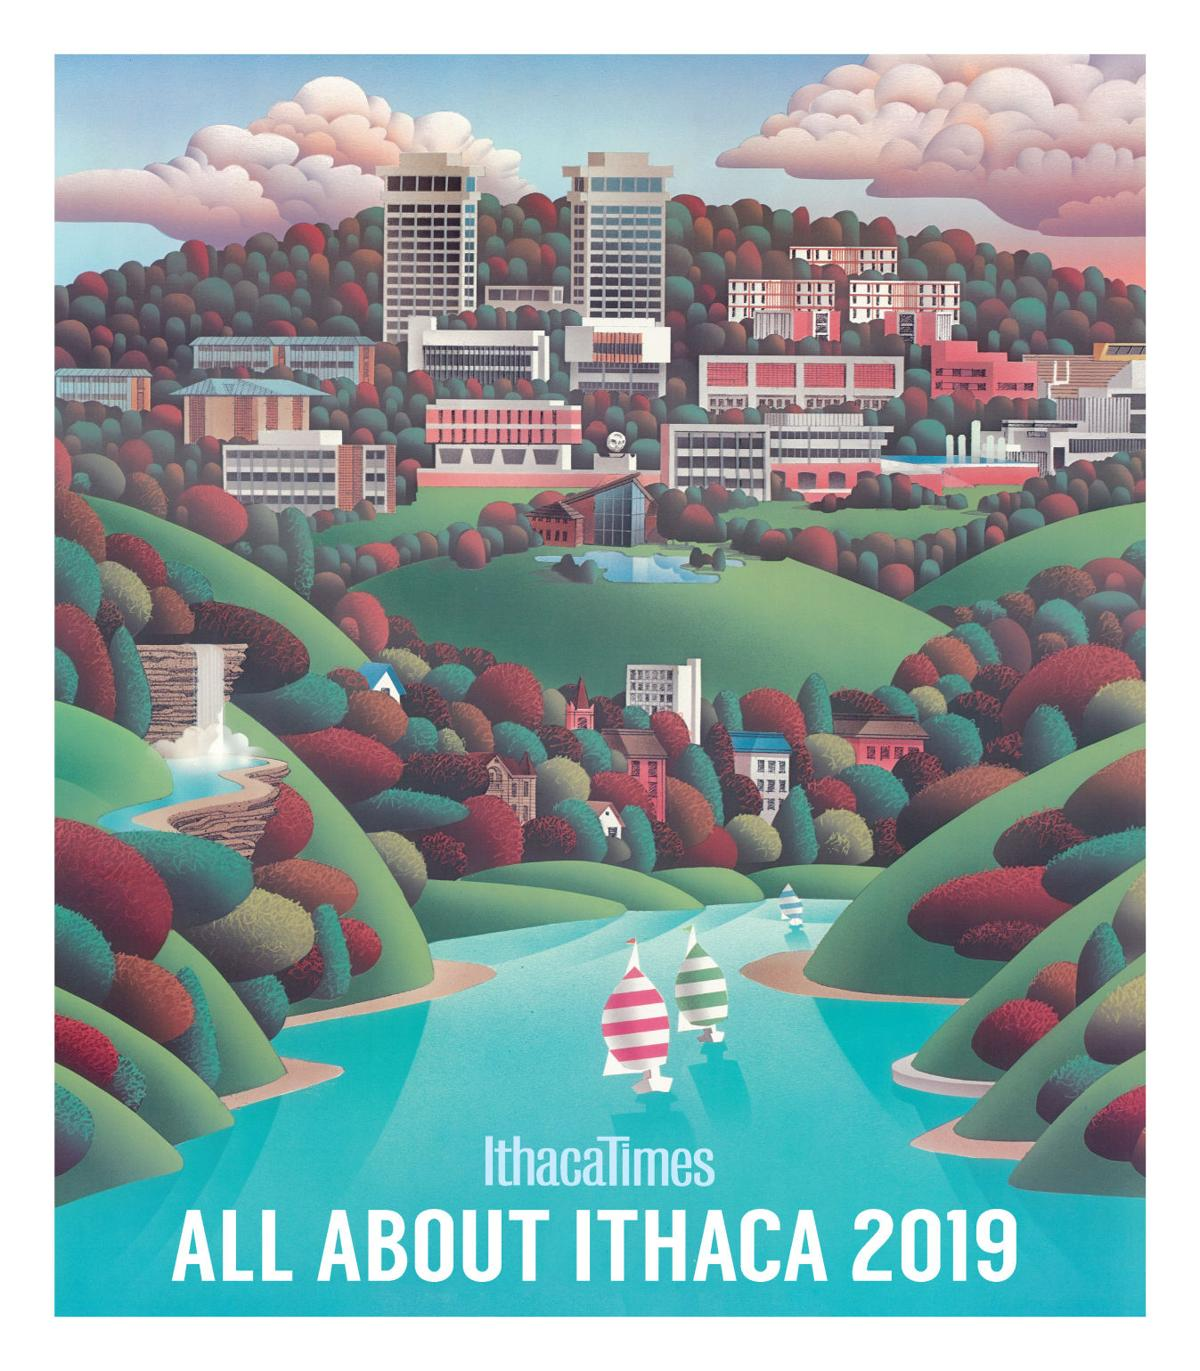 All About Ithaca 2019